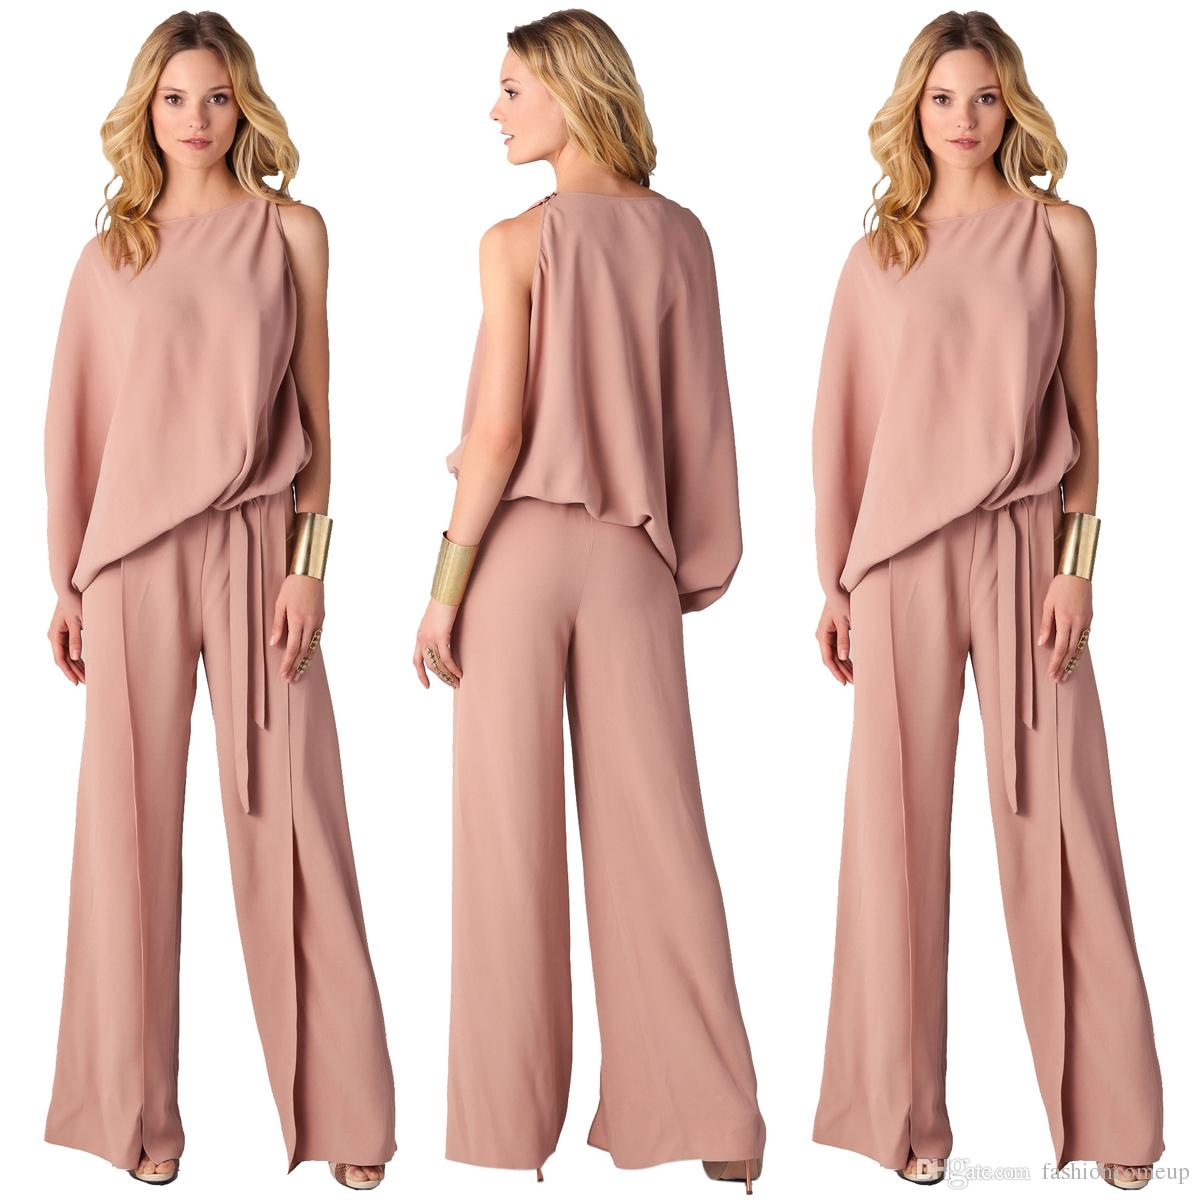 0e1603209626 2018 Women Jumpsuits One-Shoulder Rompers Plus Size Office Lady Work  Dresses Fashion Sexy Pink S-3XL SF06-7 Women Jumpsuits One-Shoulder Rompers  Office Lady ...